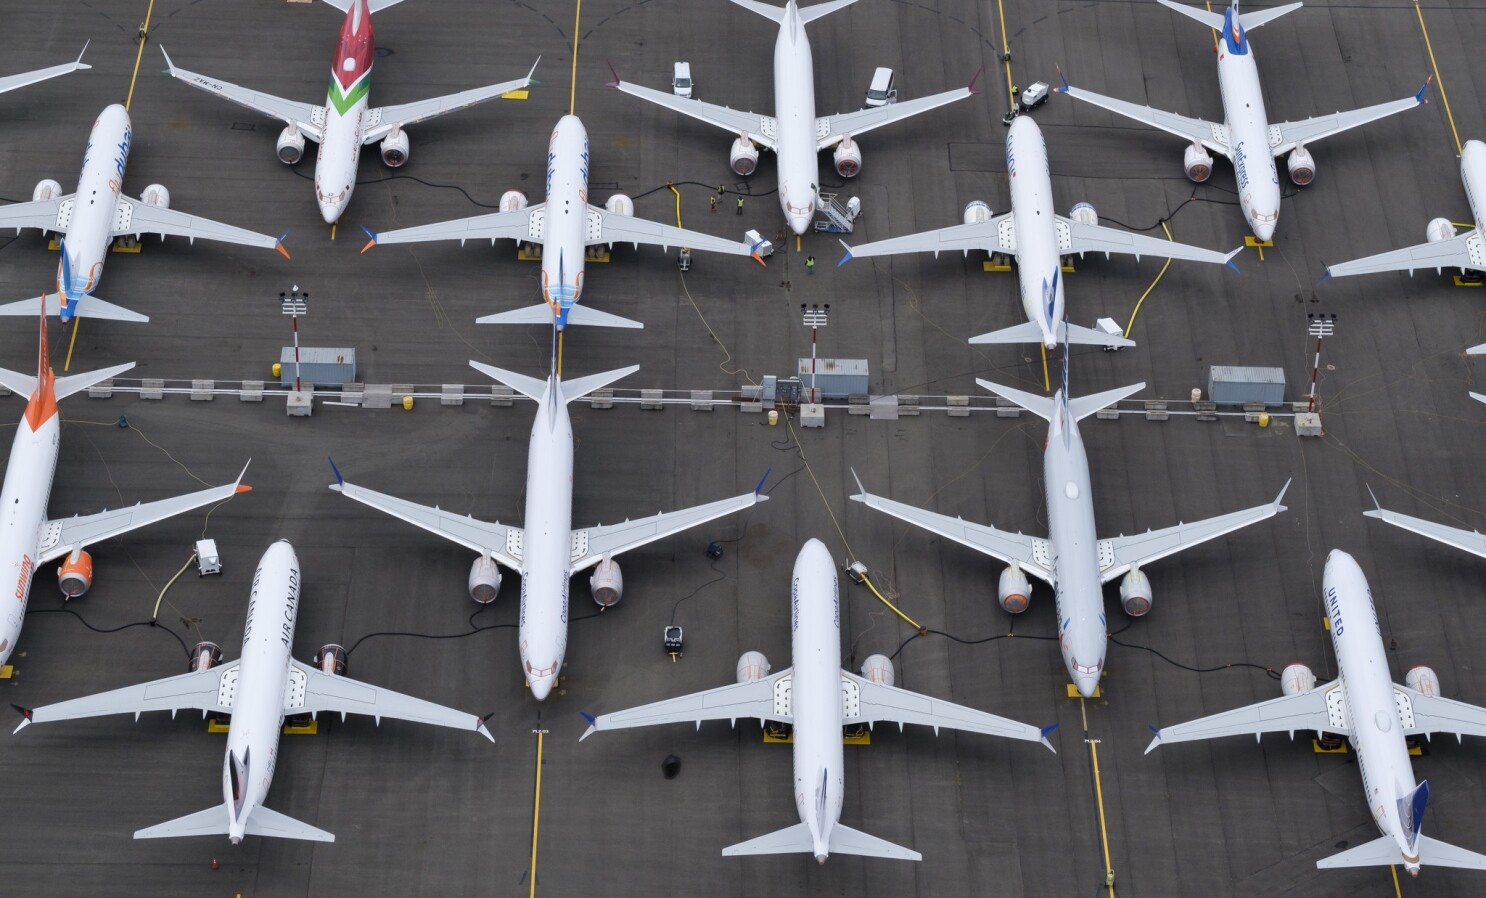 Boeing 737 Max groundings force airlines to scale back growth plans - Los Angeles Times